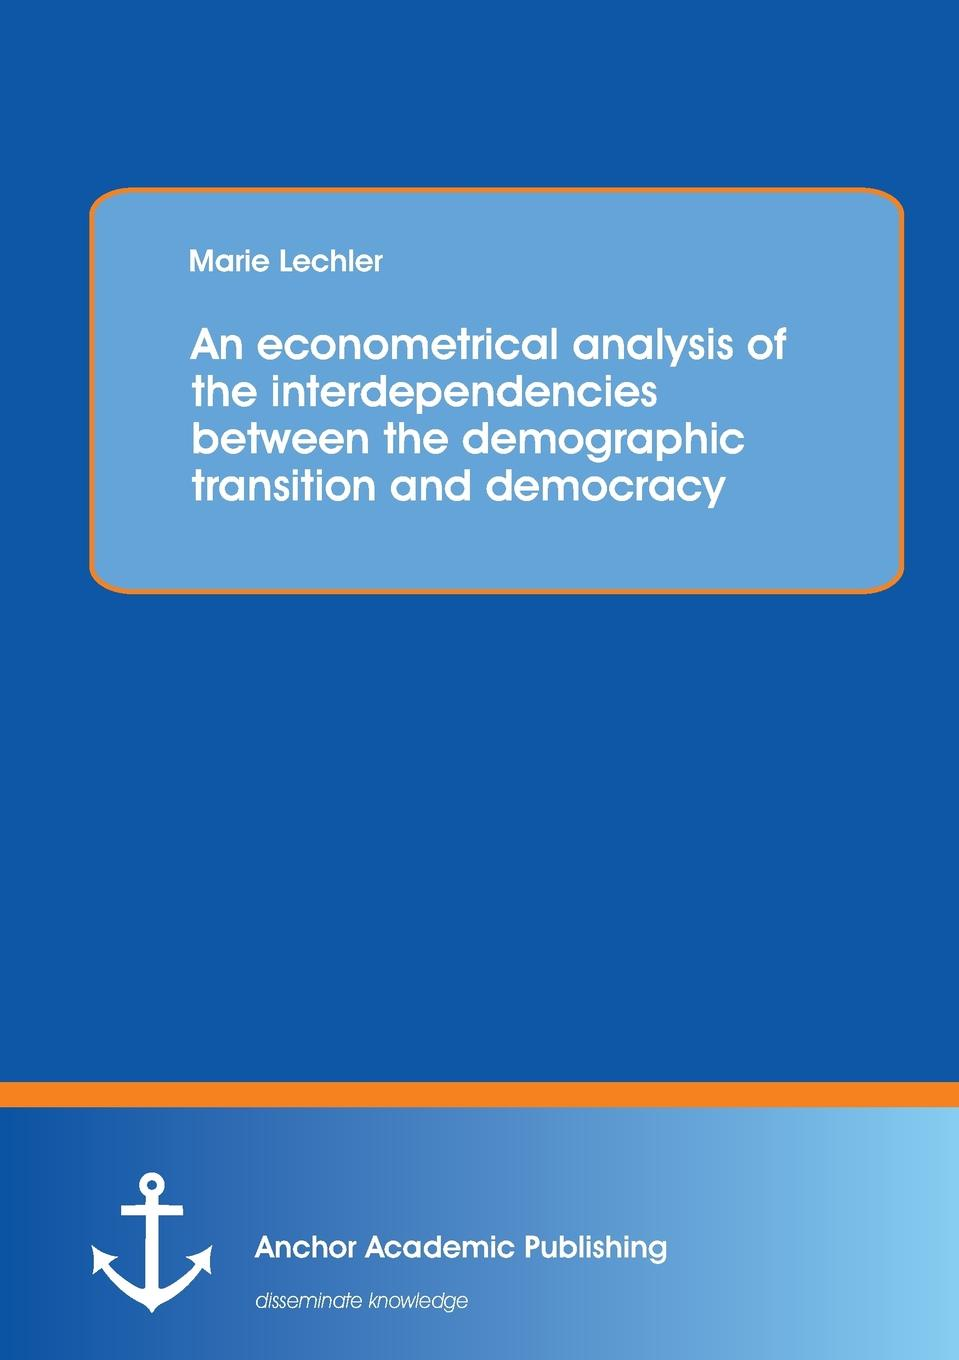 Marie Lechler An Econometrical Analysis of the Interdependencies Between the Demographic Transition and Democracy negotiating the transition